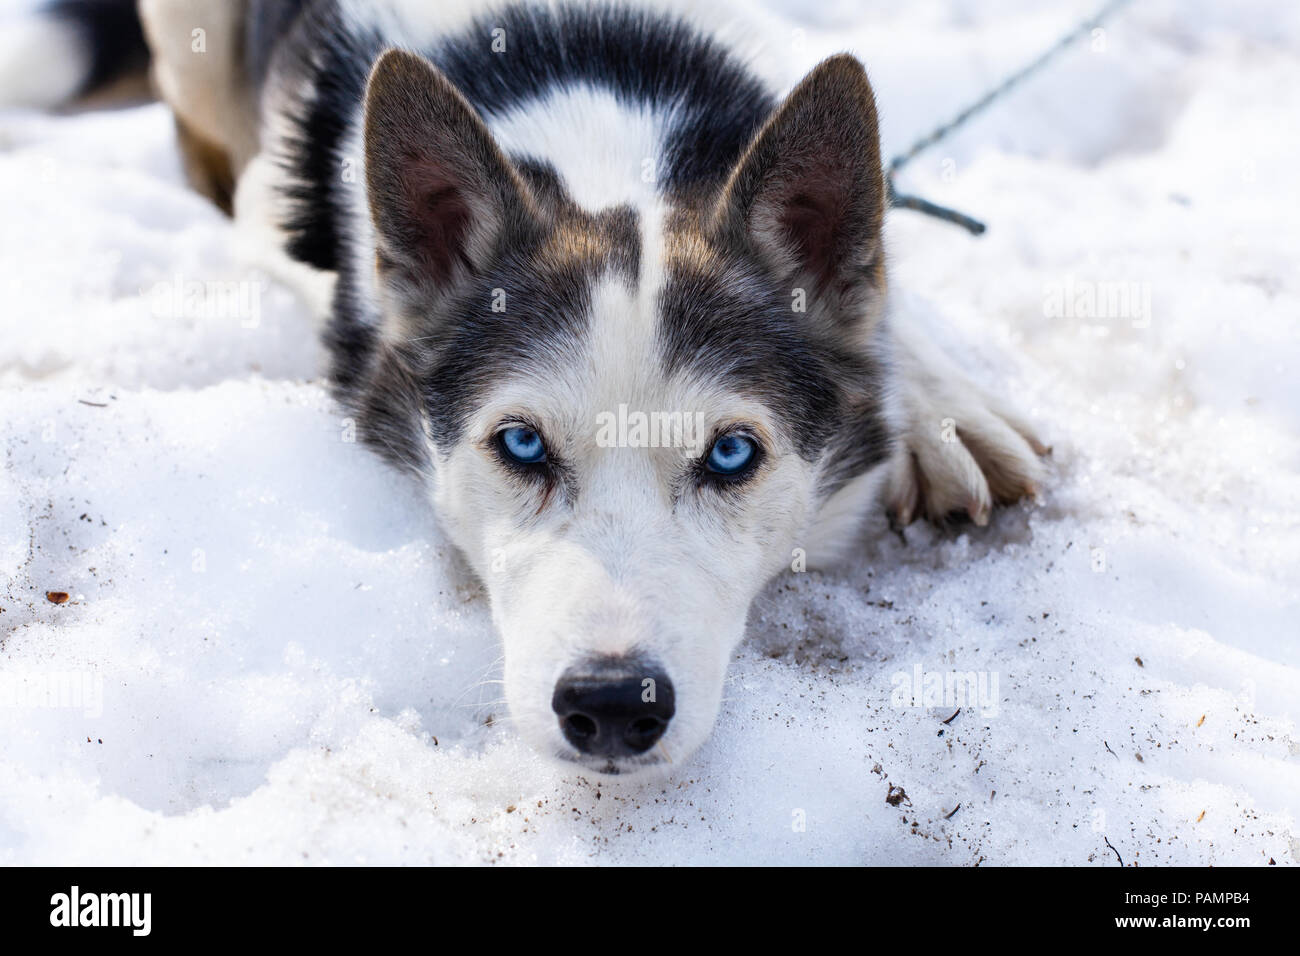 Playful alaskan husky dog looks straight into the camera while laying in snow - Stock Image